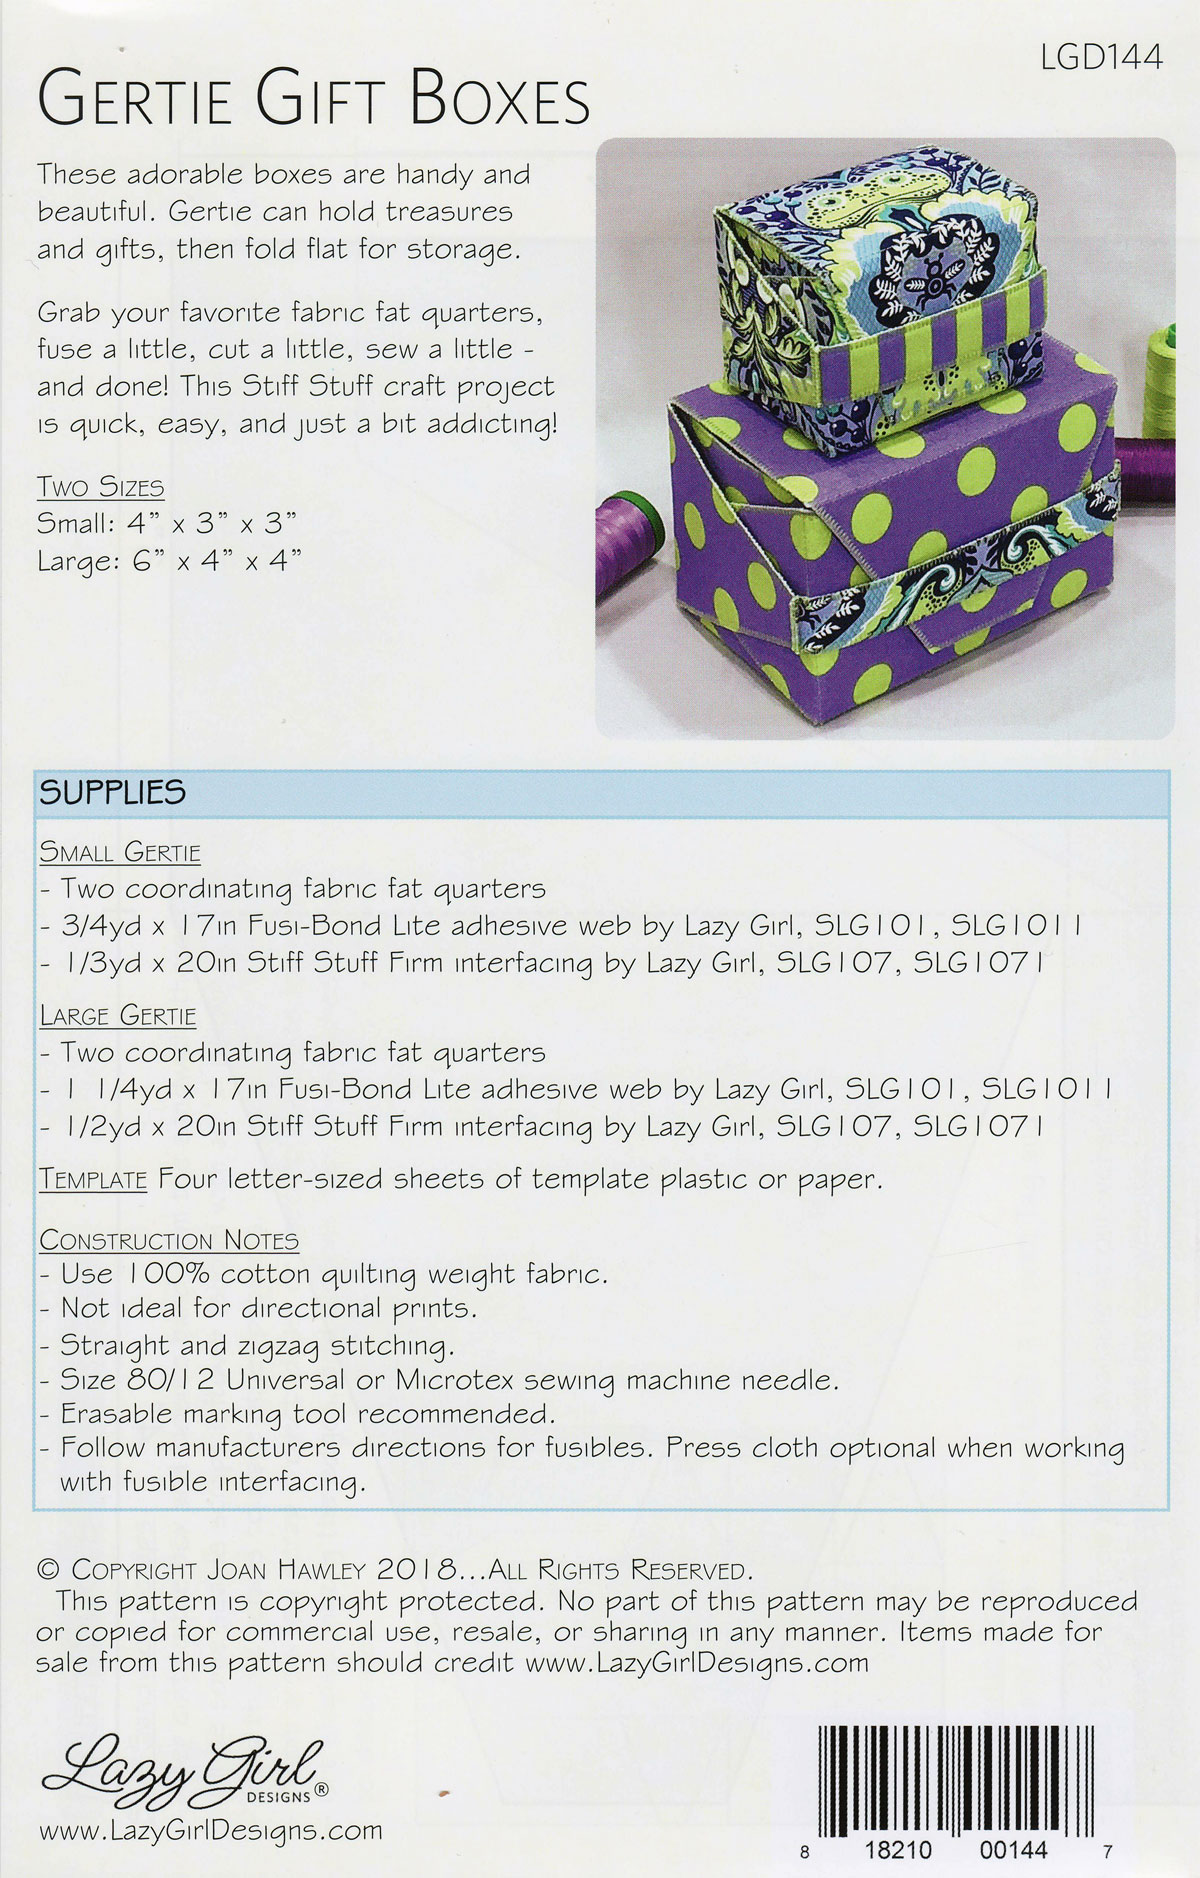 Gertie-Gift-Boxes-sewing-pattern-Lazy-Girl-Designs-back